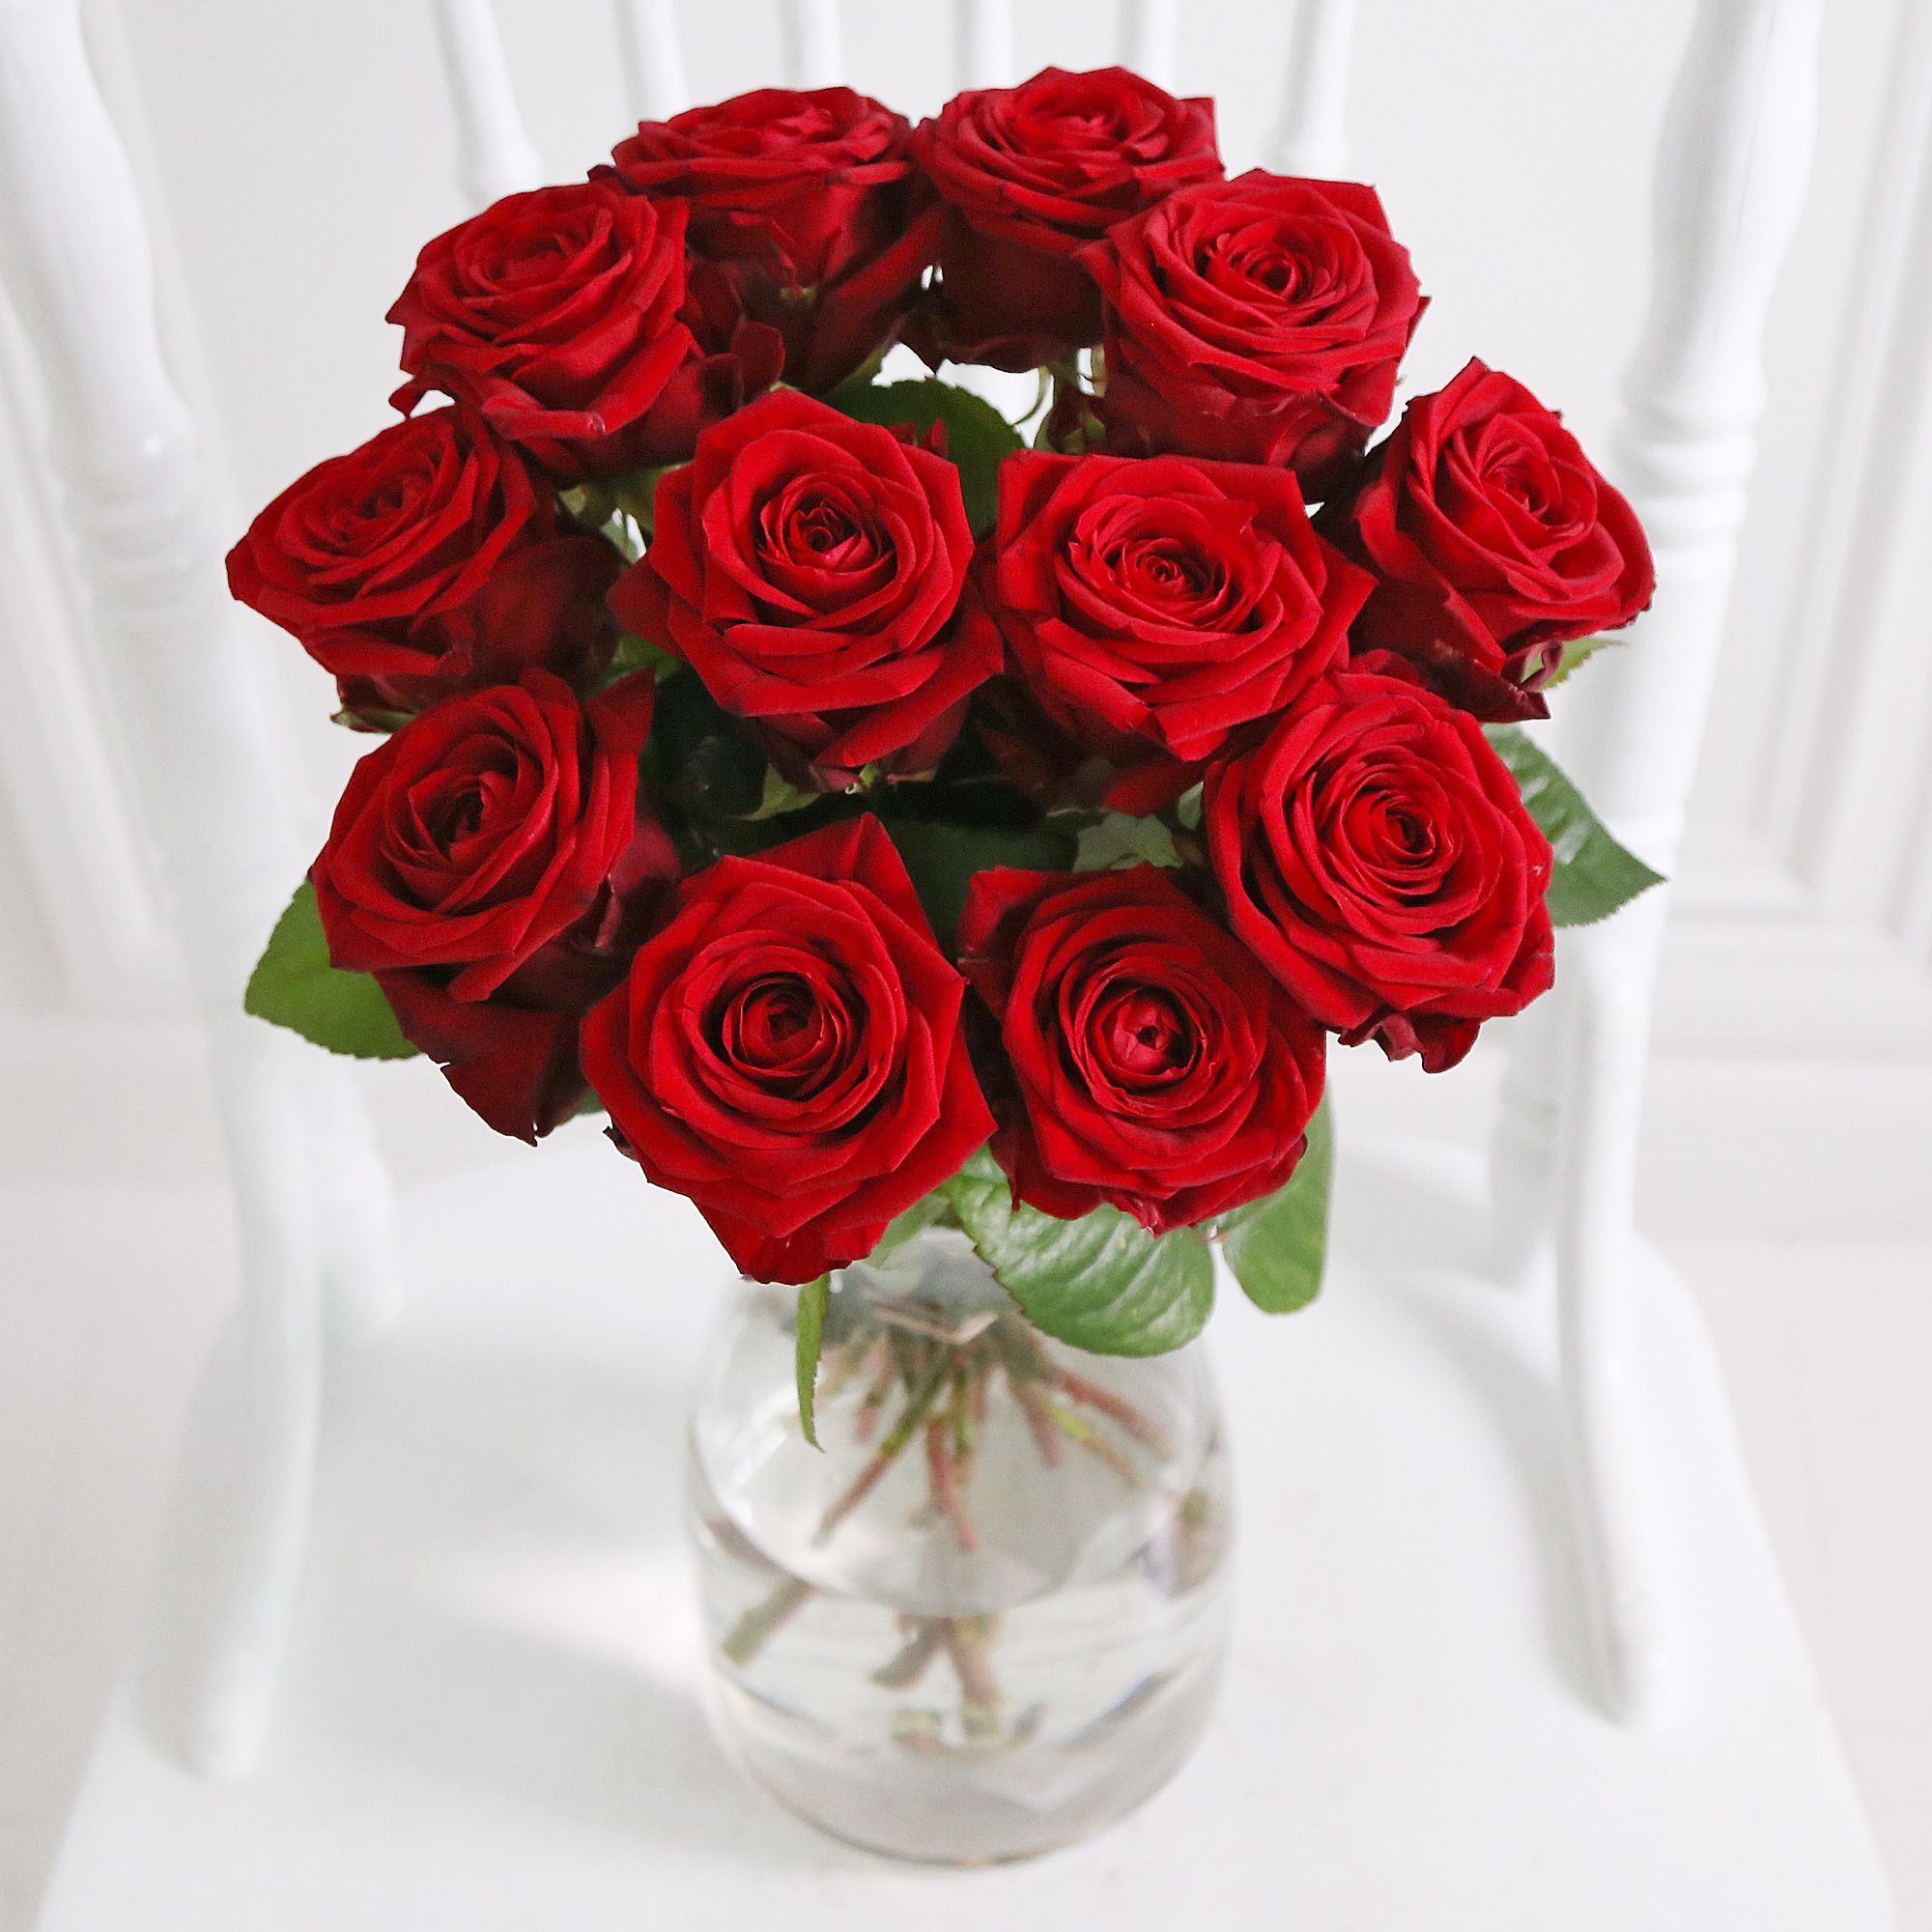 Call now on 0800 0350 Flower Delivery London & UK from leading online flower shop Arena Flowers